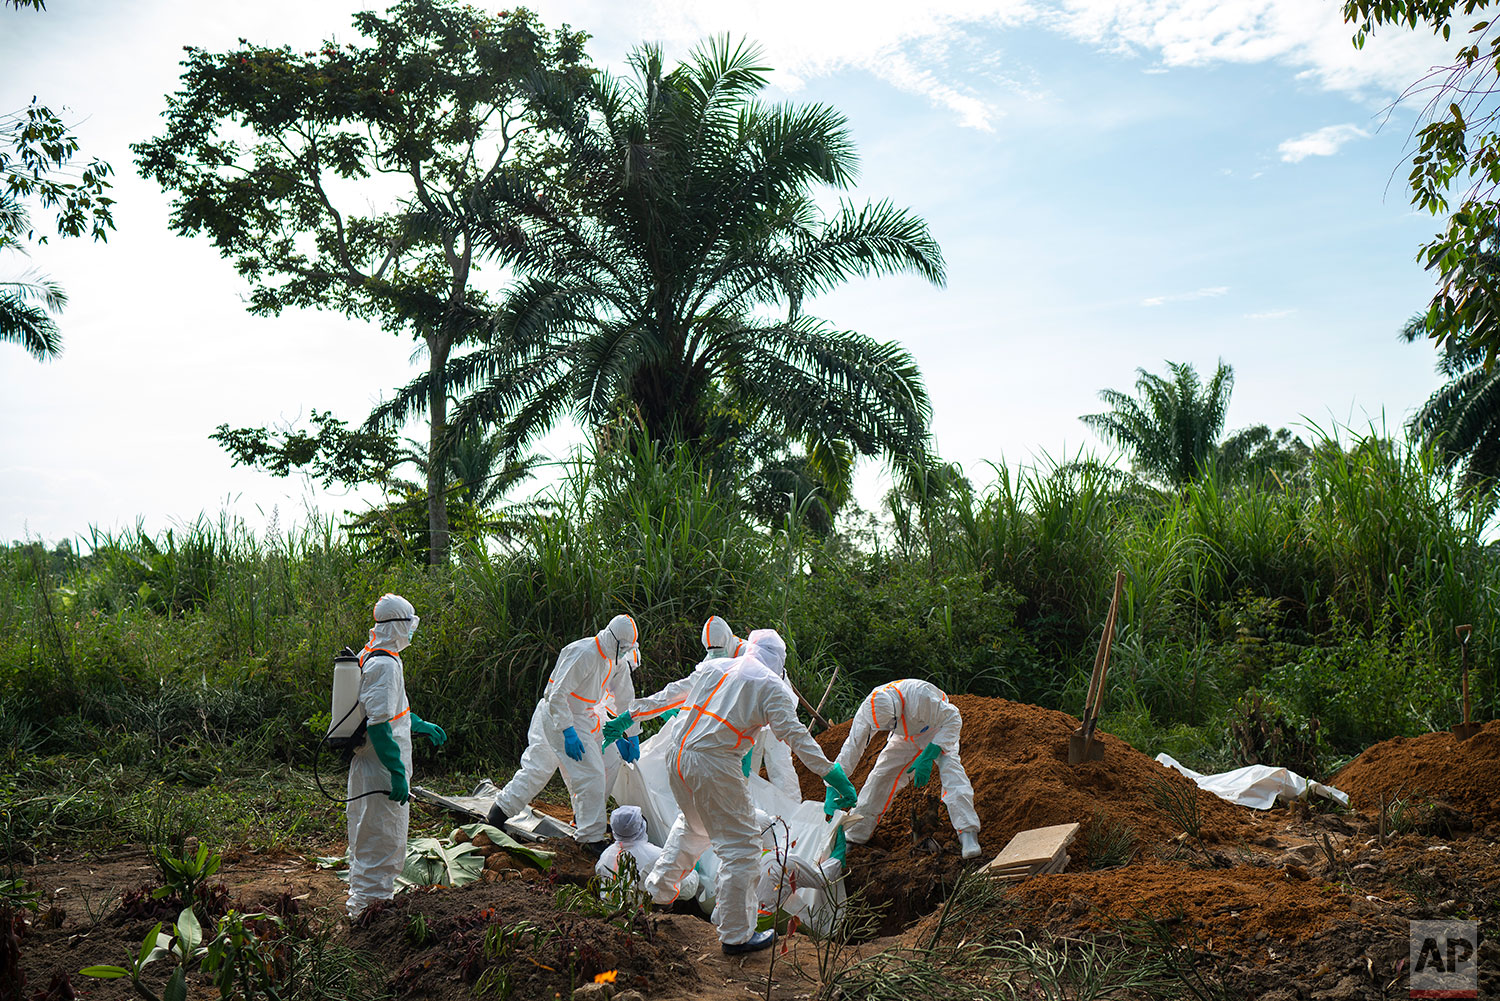 In this July 14, 2019 photo, burial workers  bury the remains of Mussa Kathembo, an Islamic scholar who had prayed over those who were sick in Beni, Congo DRC. Kathembo died of Ebola. (AP Photo/Jerome Delay)